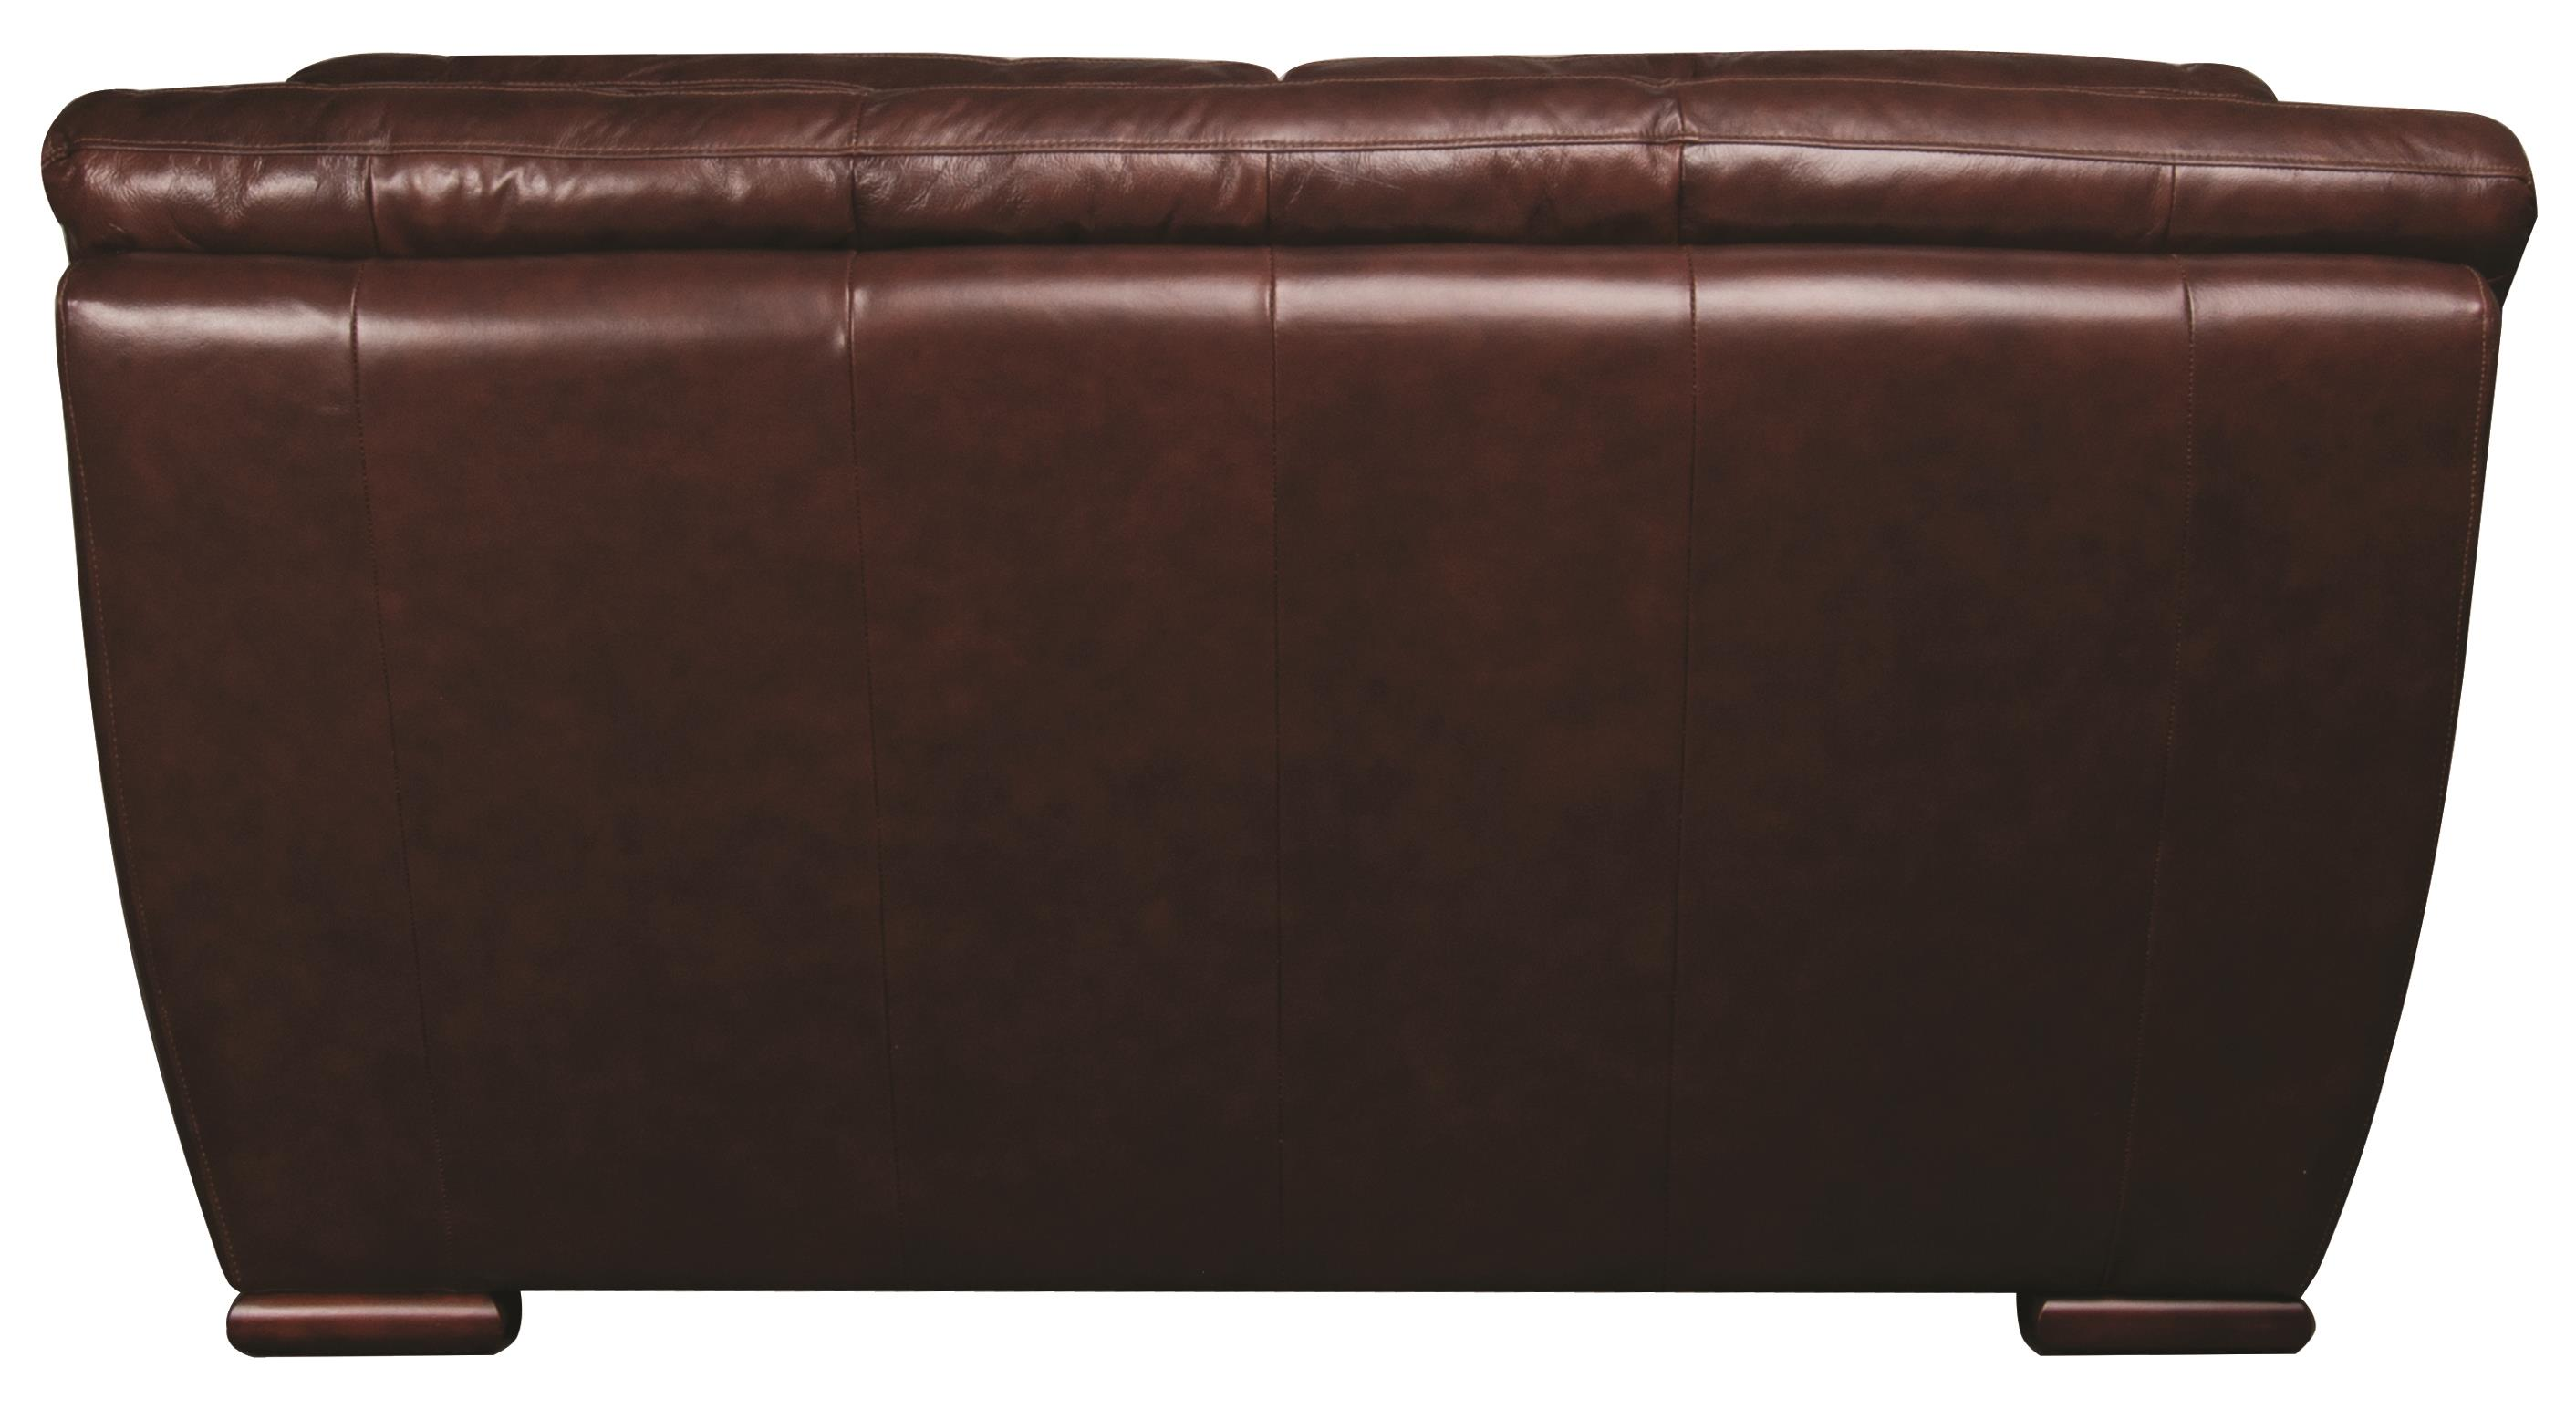 Austin 100 leather loveseat morris home love seat Morris home furniture hours